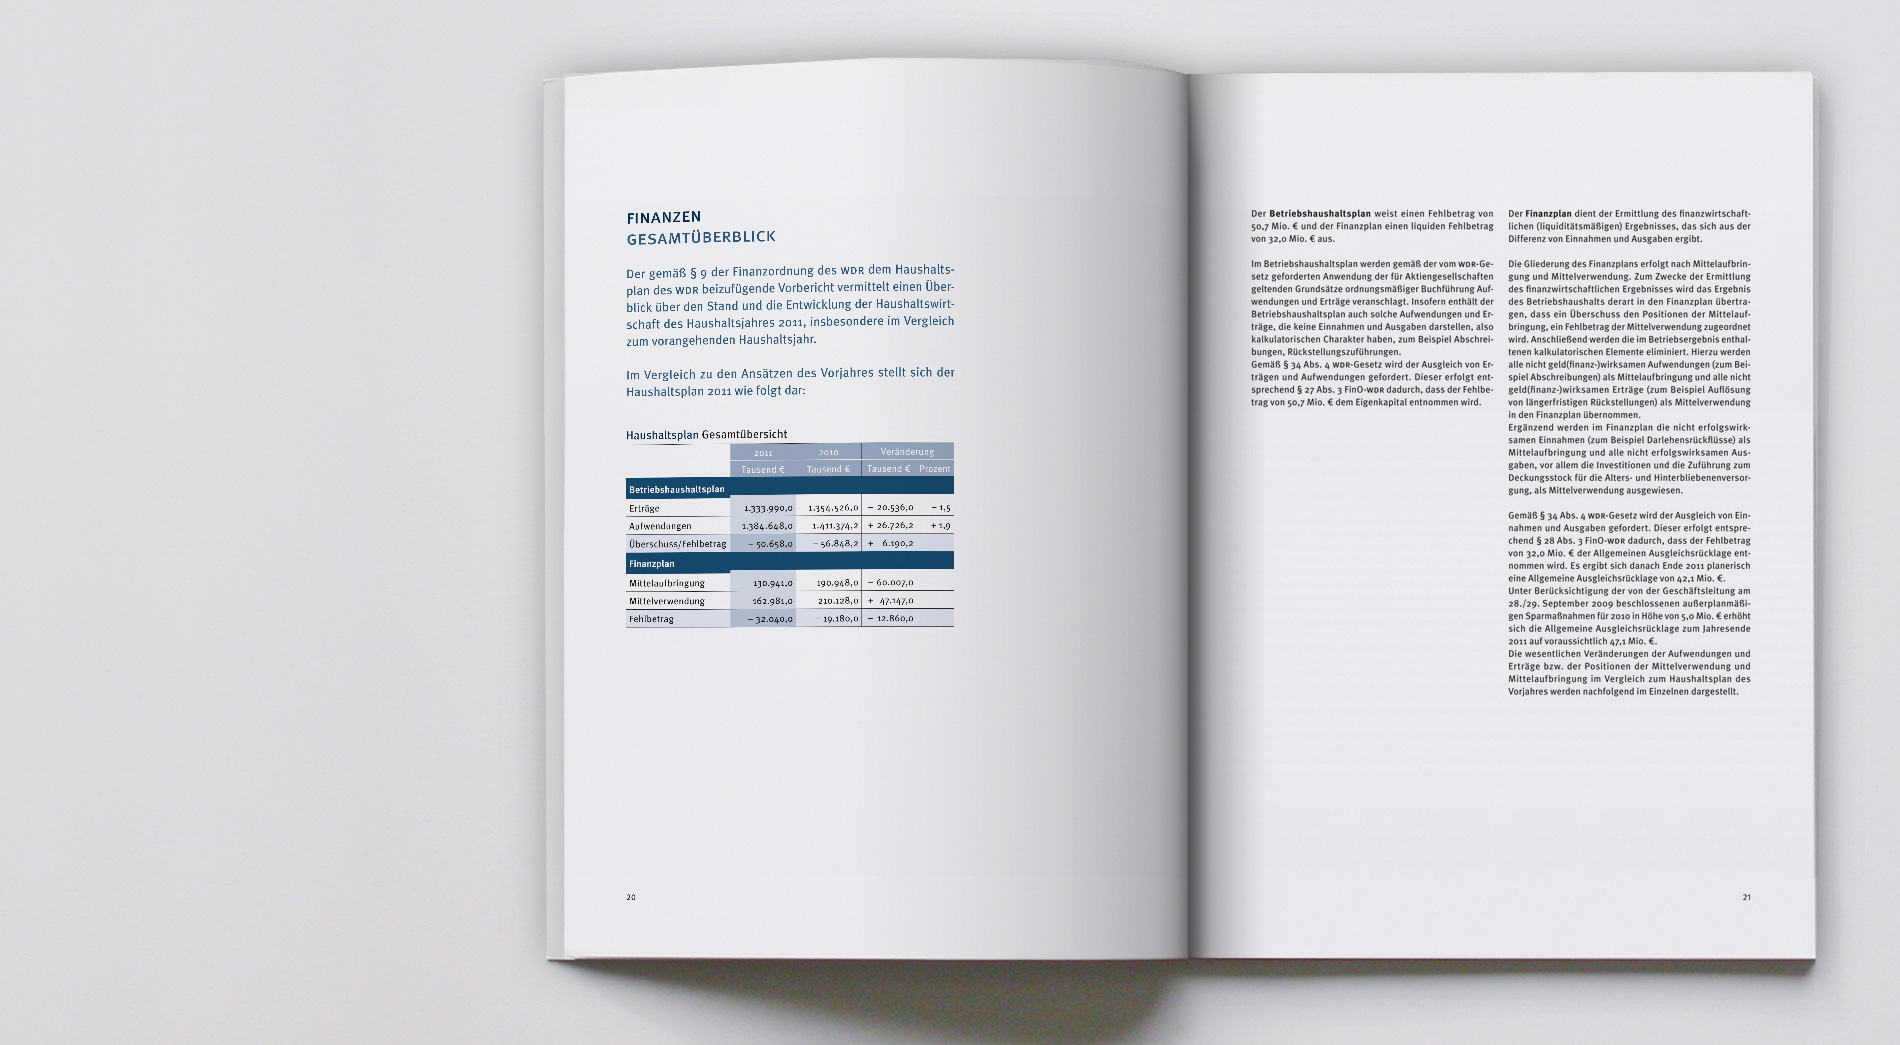 WDR Budget 2011